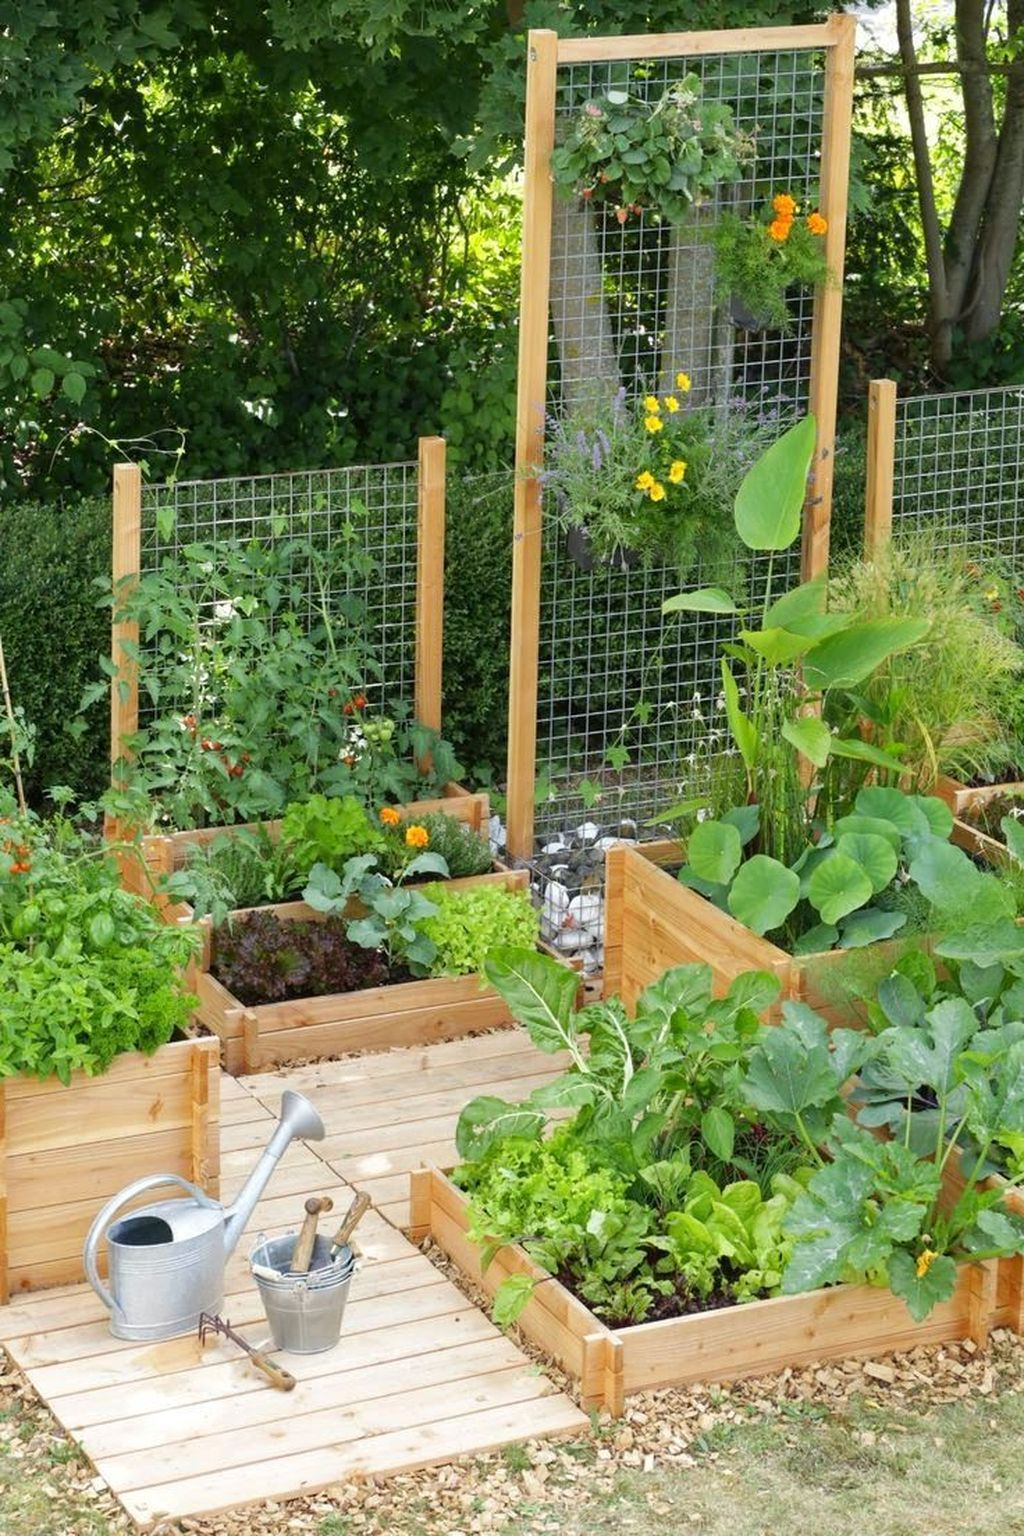 30+ Cozy Small Vegetable Garden Ideas On A Budget Small